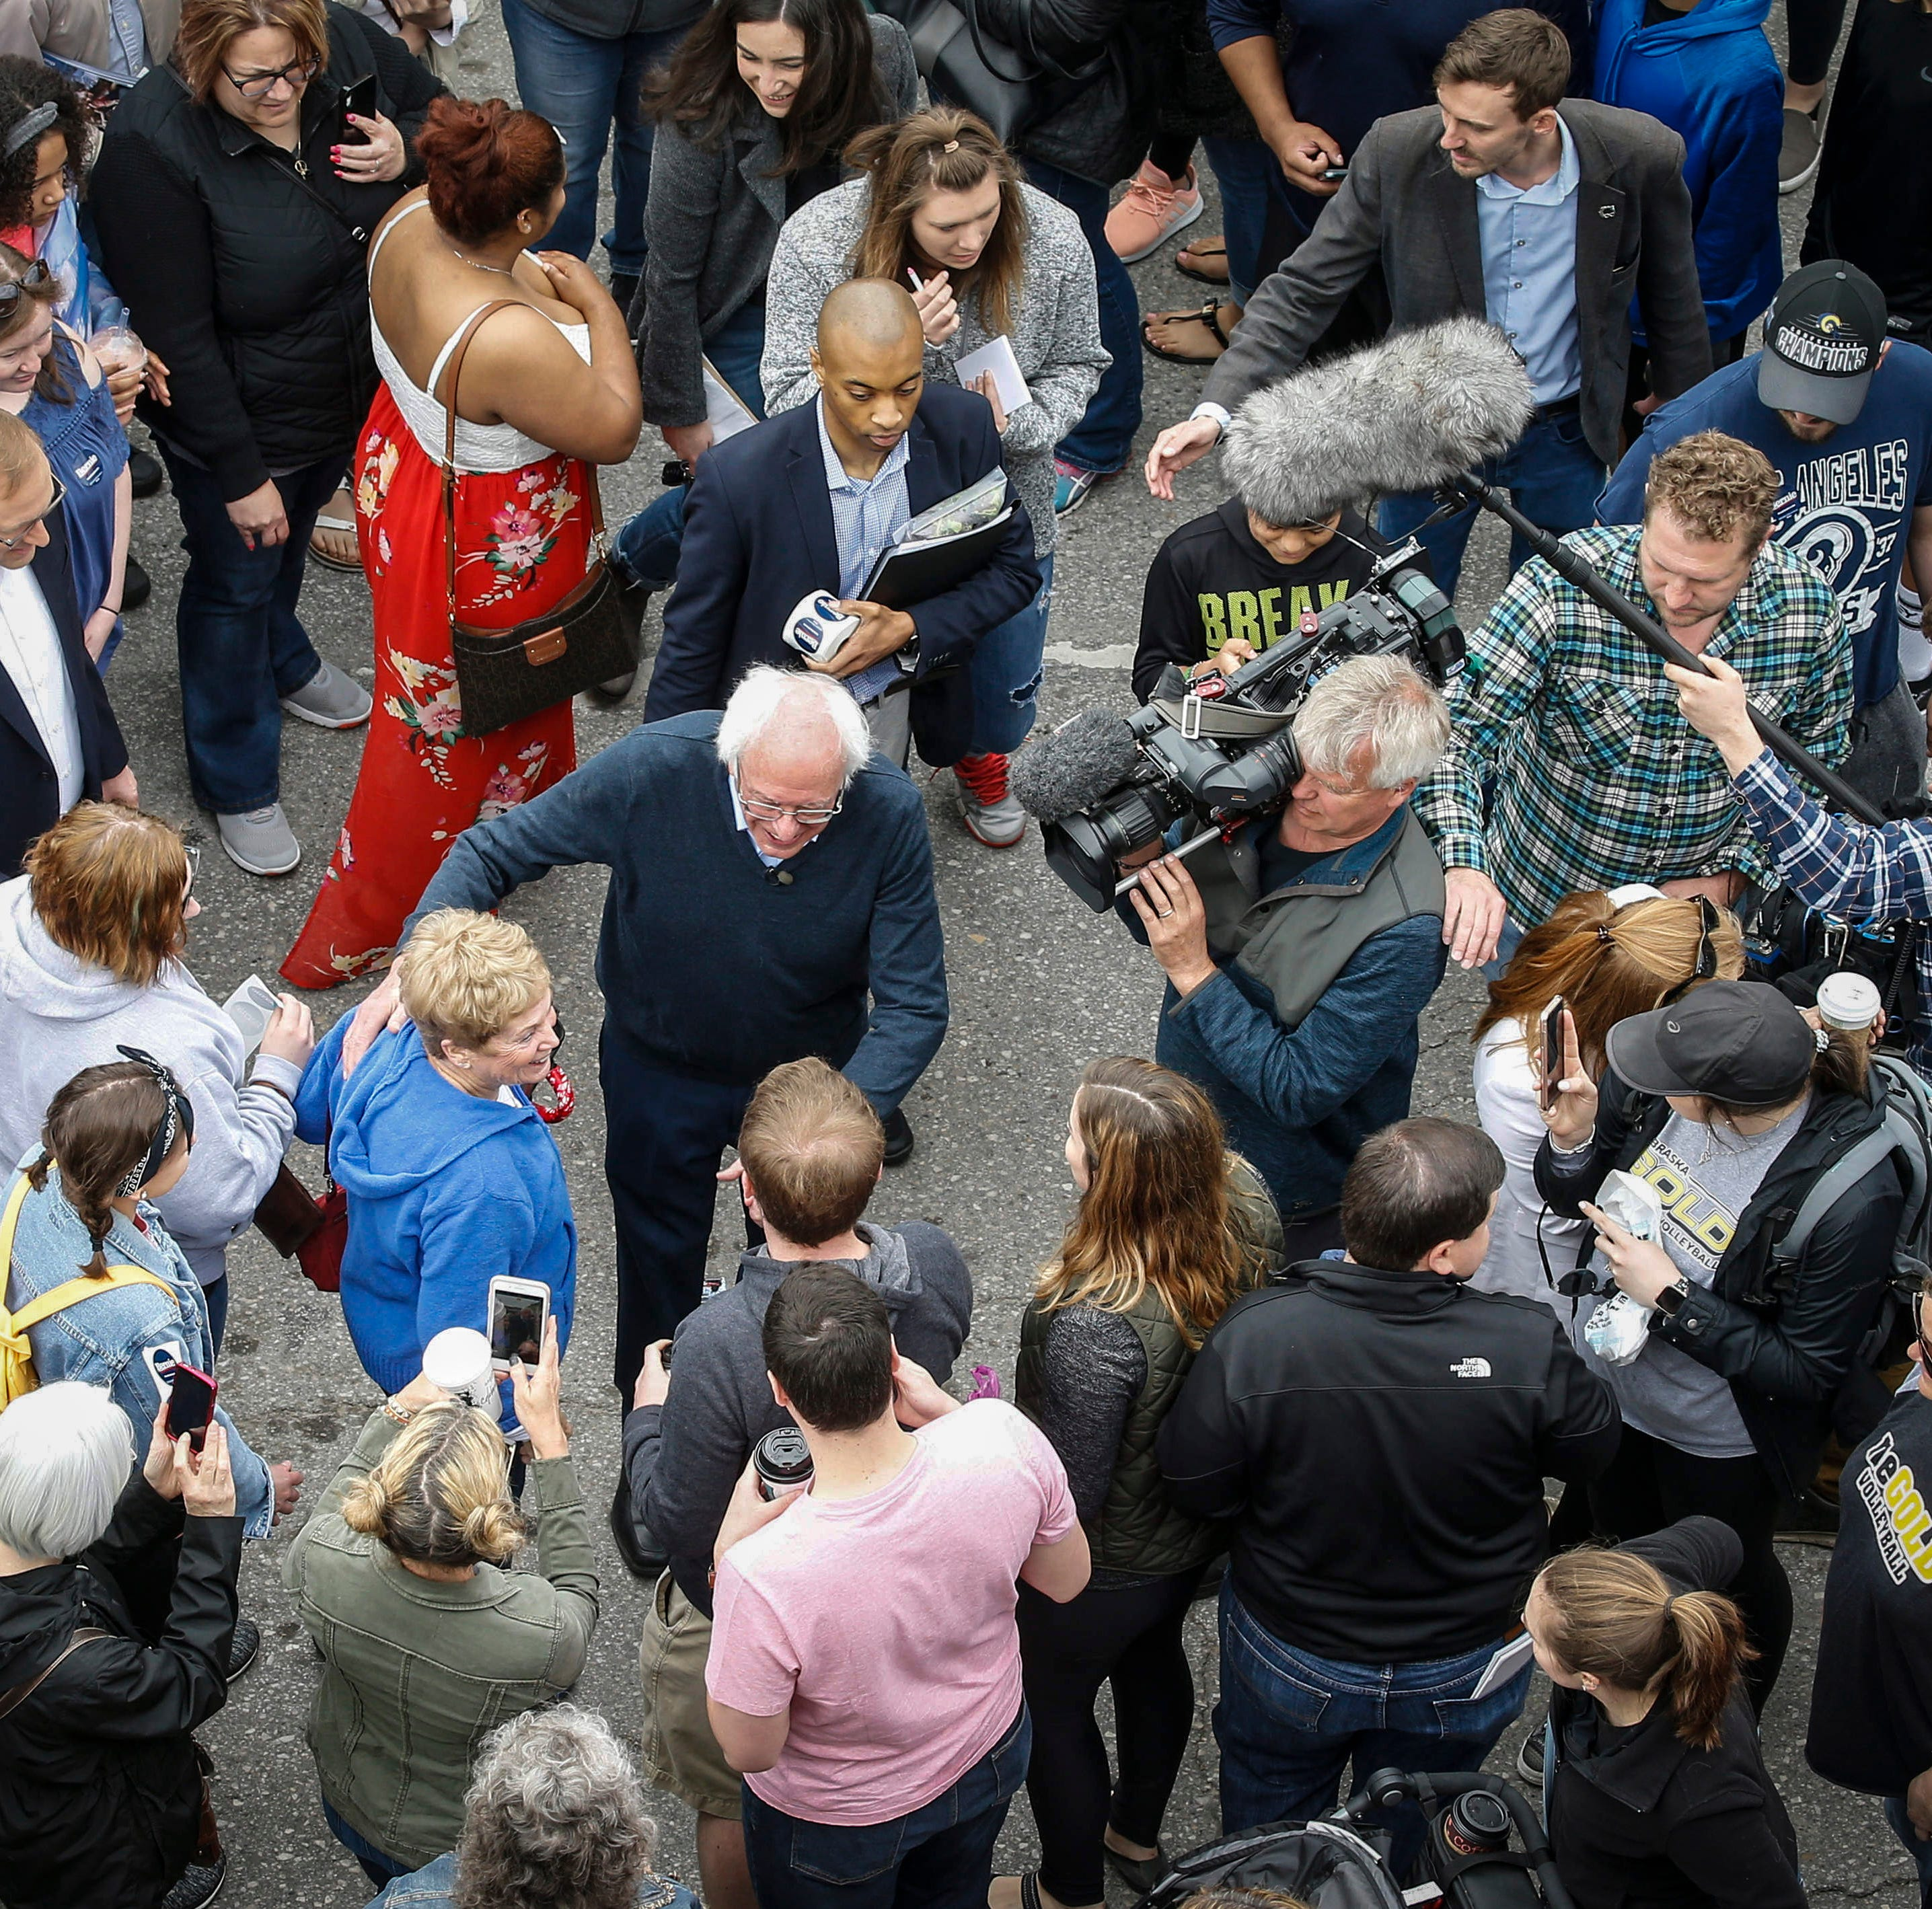 'We love you in Iowa': Crowds flock to Bernie Sanders during surprise visit to Des Moines' Downtown Farmers' Market